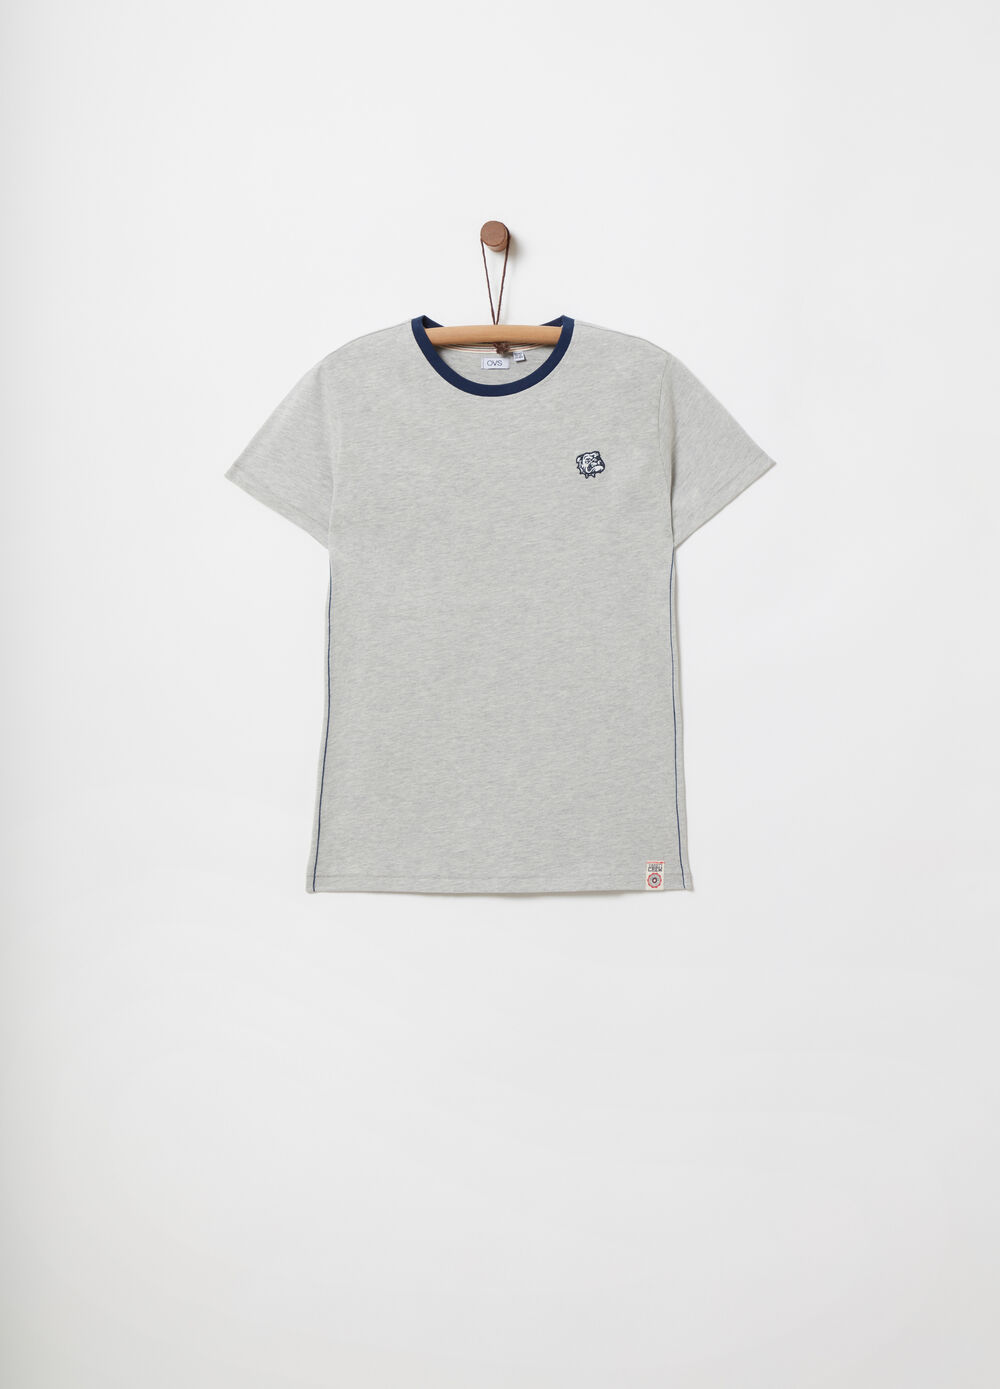 Jersey T-shirt with print and embroidery